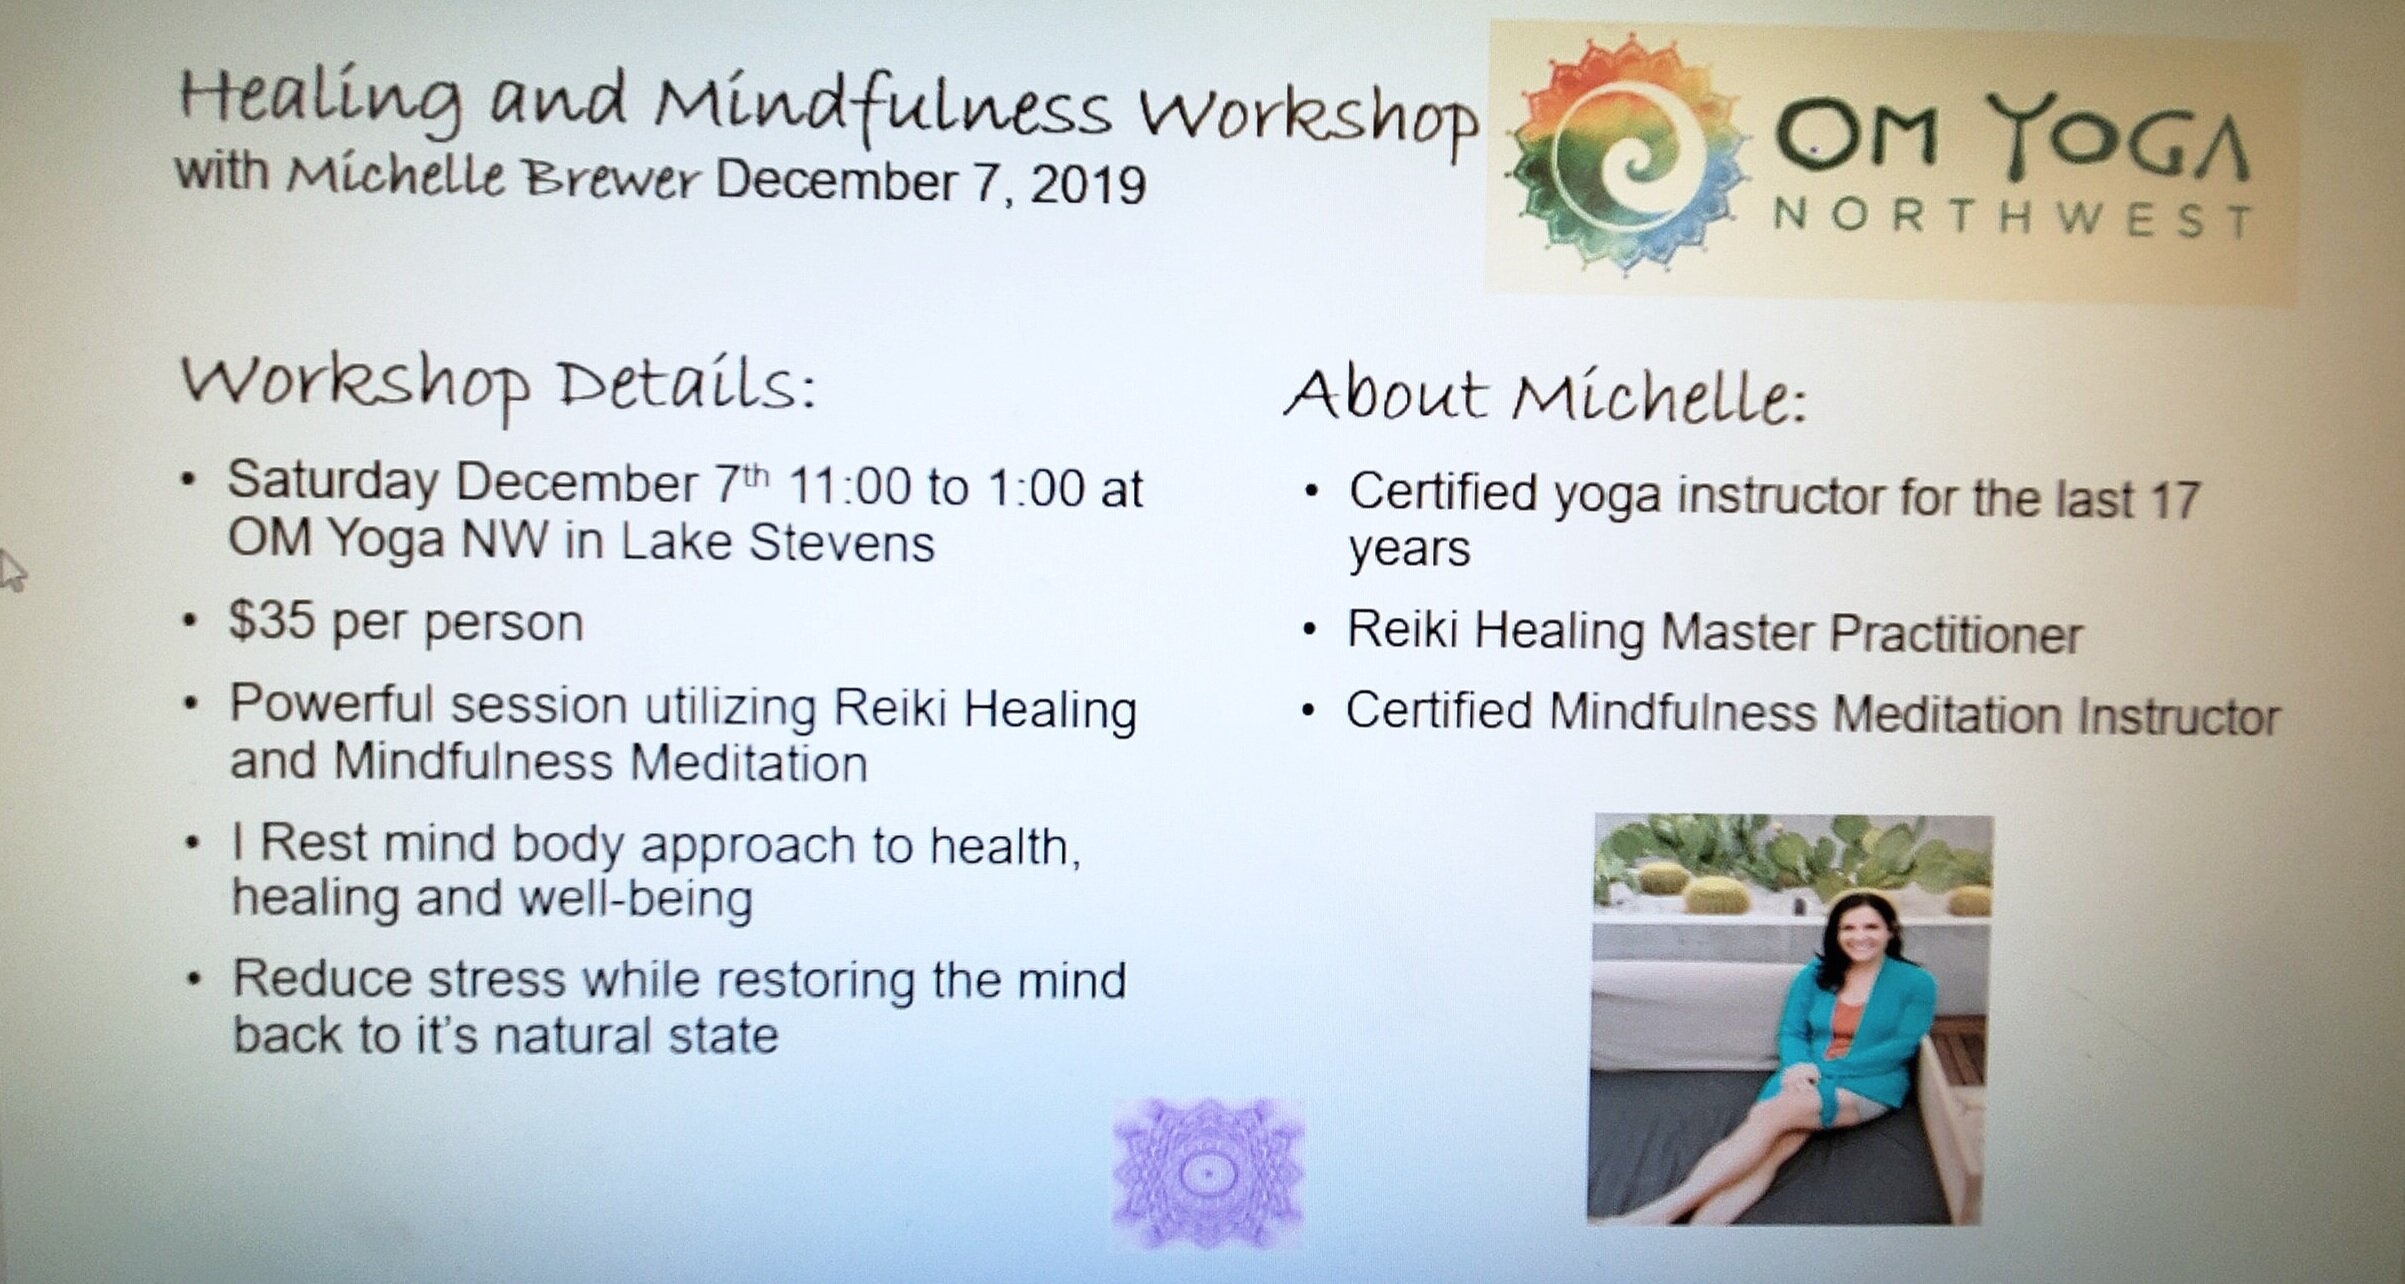 Michelle Brewer Yoga instructor for 17 year/Reiki Master/Mindfulness Instructor